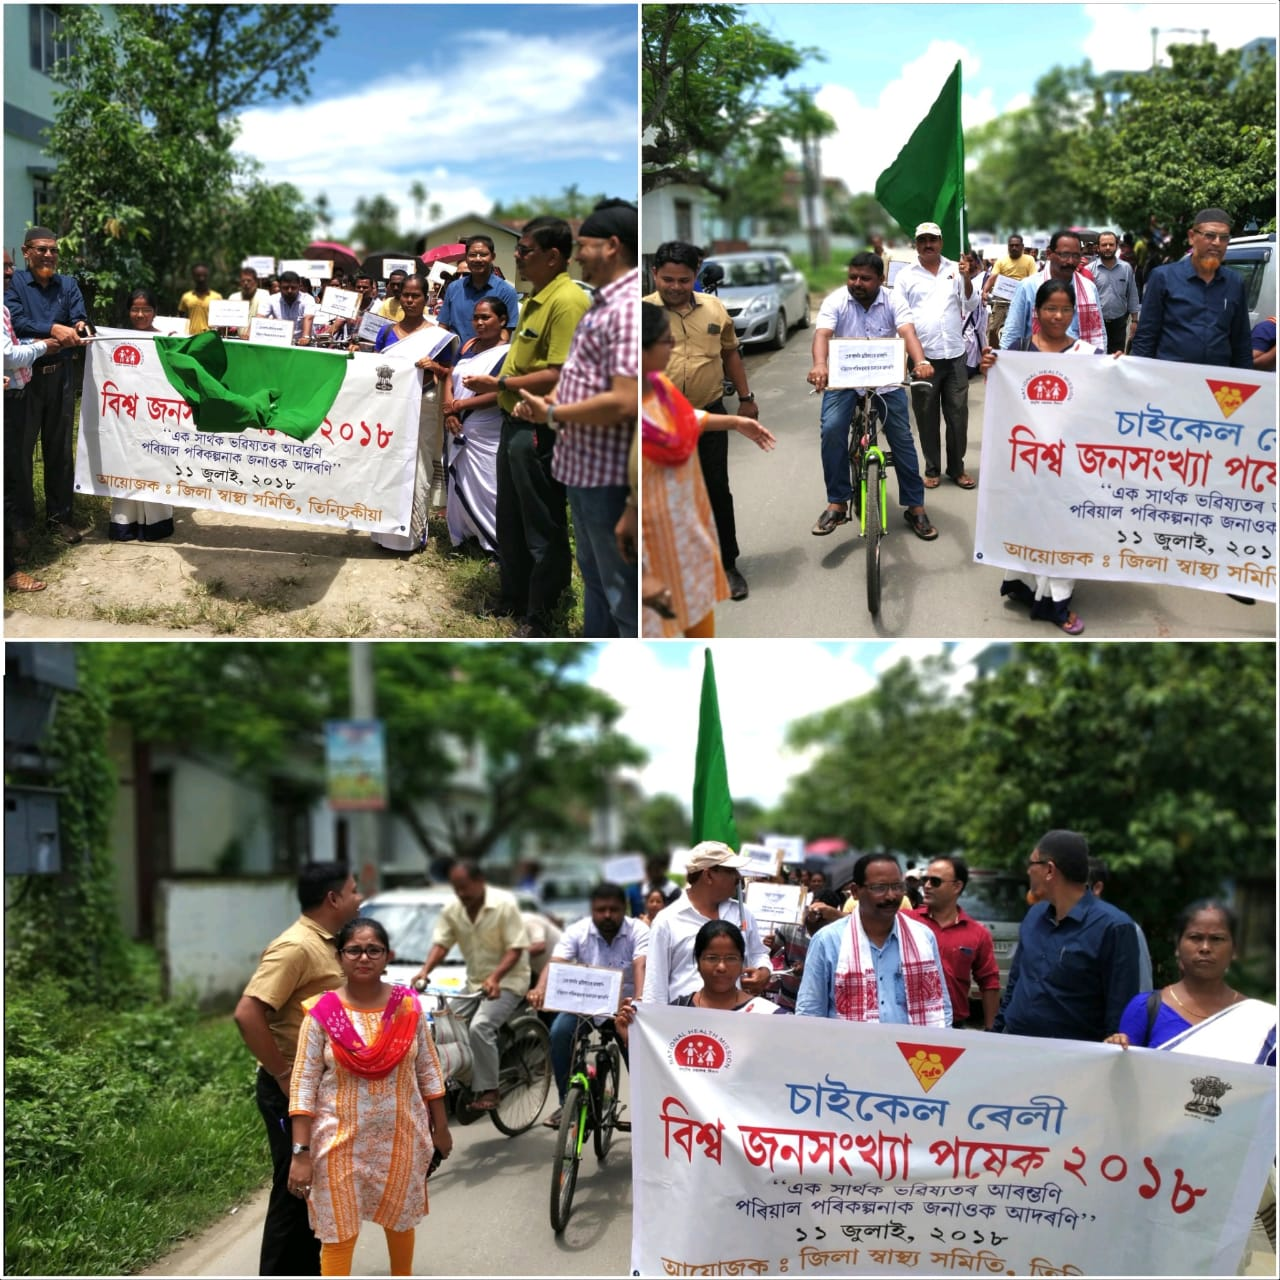 Population Stabilization activities are in full swing in #Assam. Masses turn out in large numbers to support rallies with the message of #Family Planning being a human right and responsibility